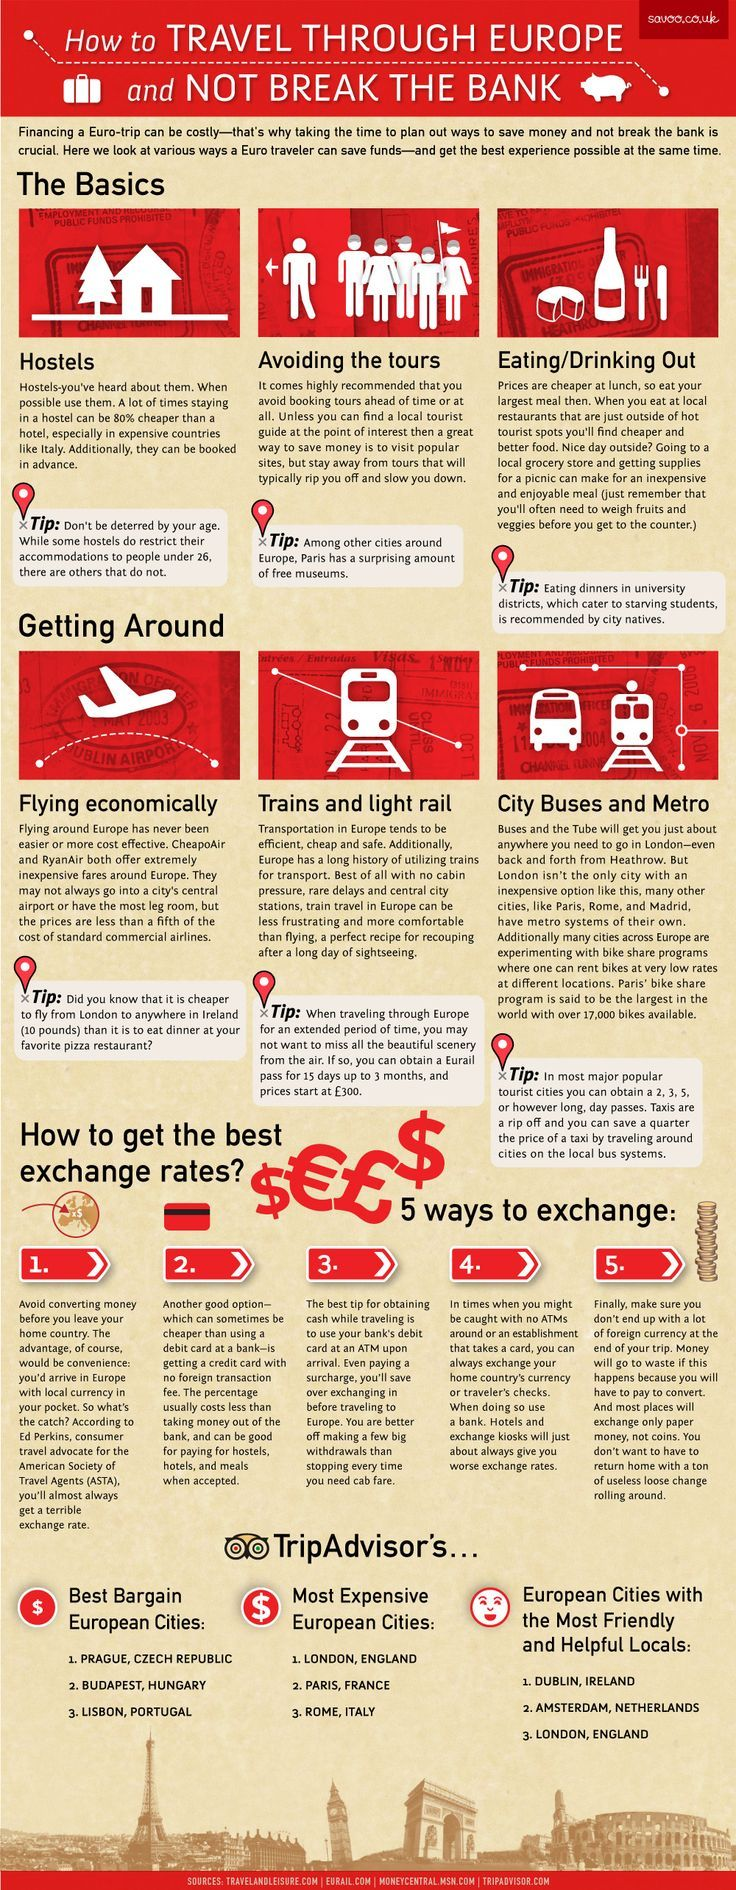 Travel Europe Cheaply. Very good travel tips for everywhere.